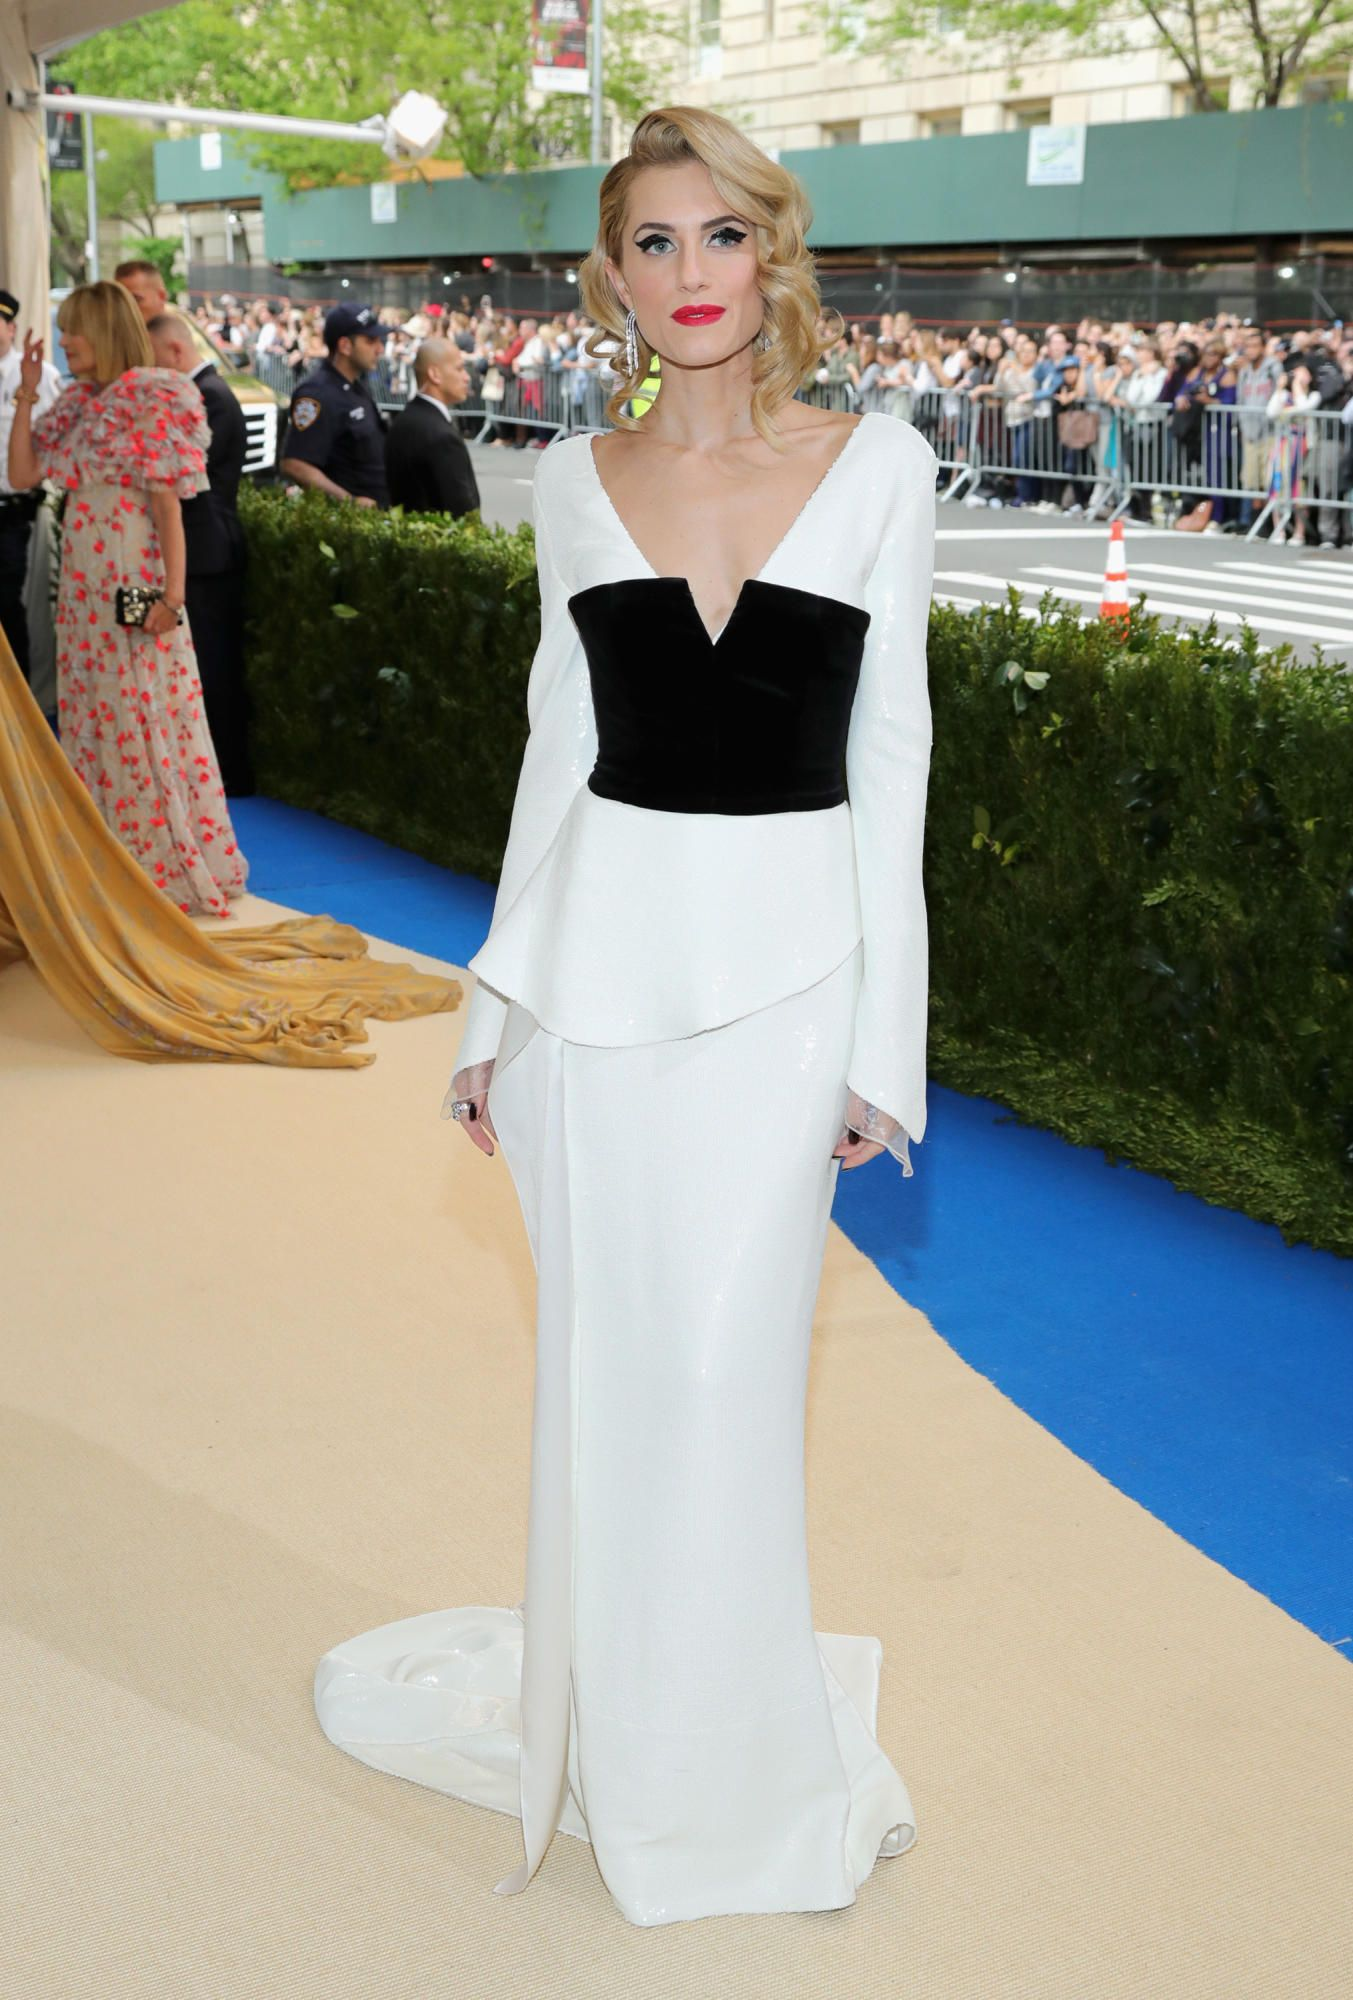 Allison williams wedding dress  Every Look From The  Met Gala Red Carpet  Allison williams